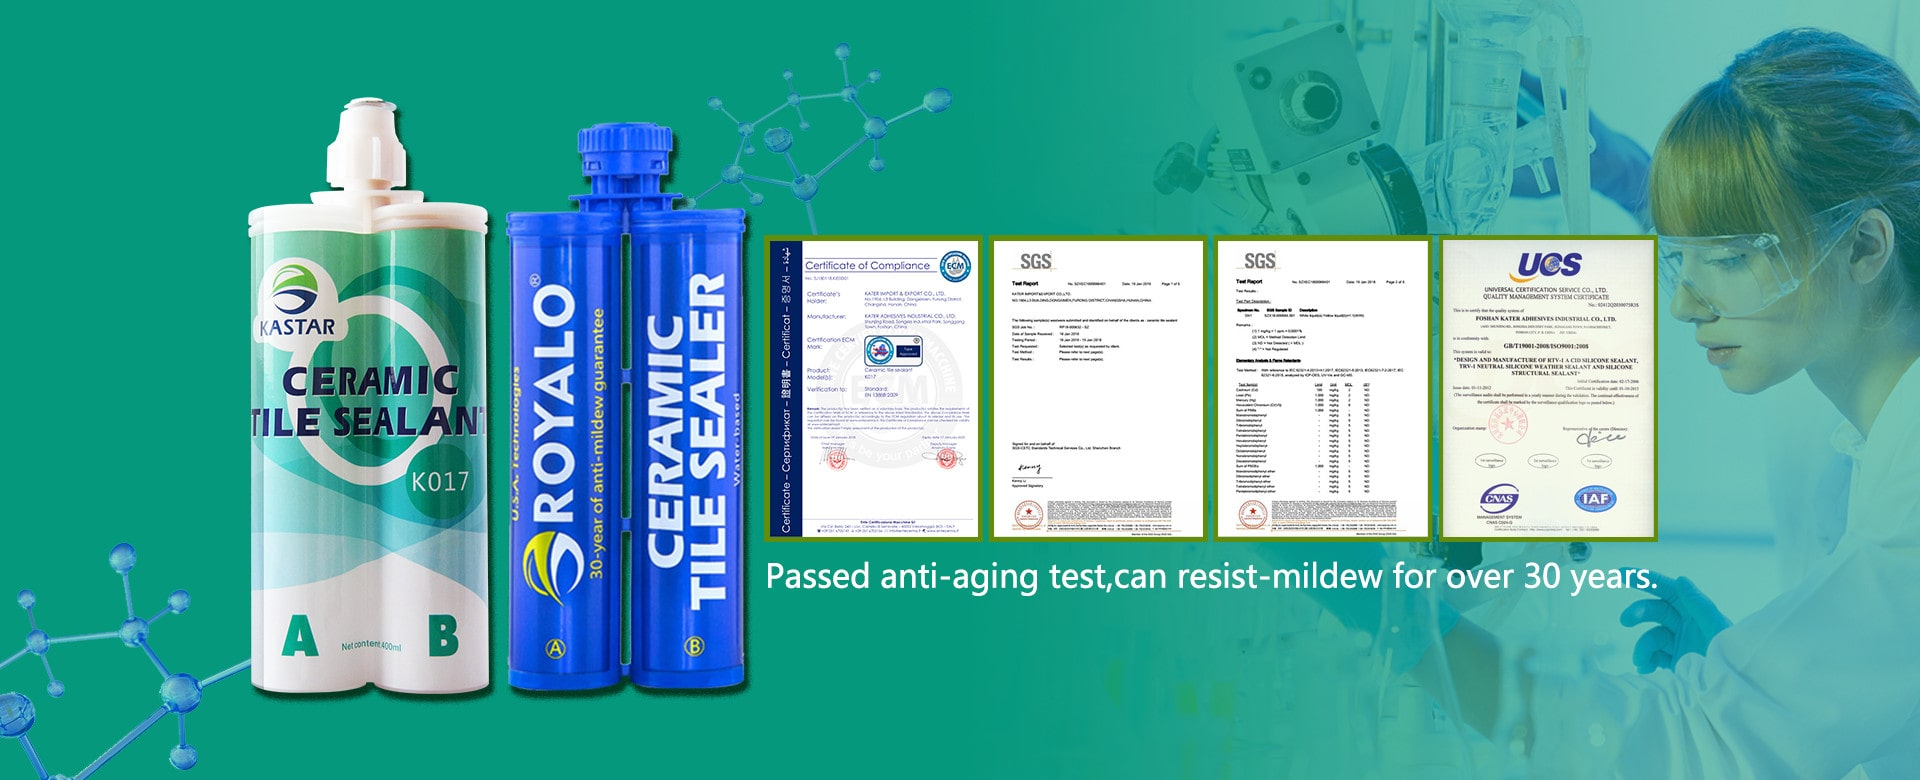 Passed anti-aging test,can resist-mildew for over 30 years.